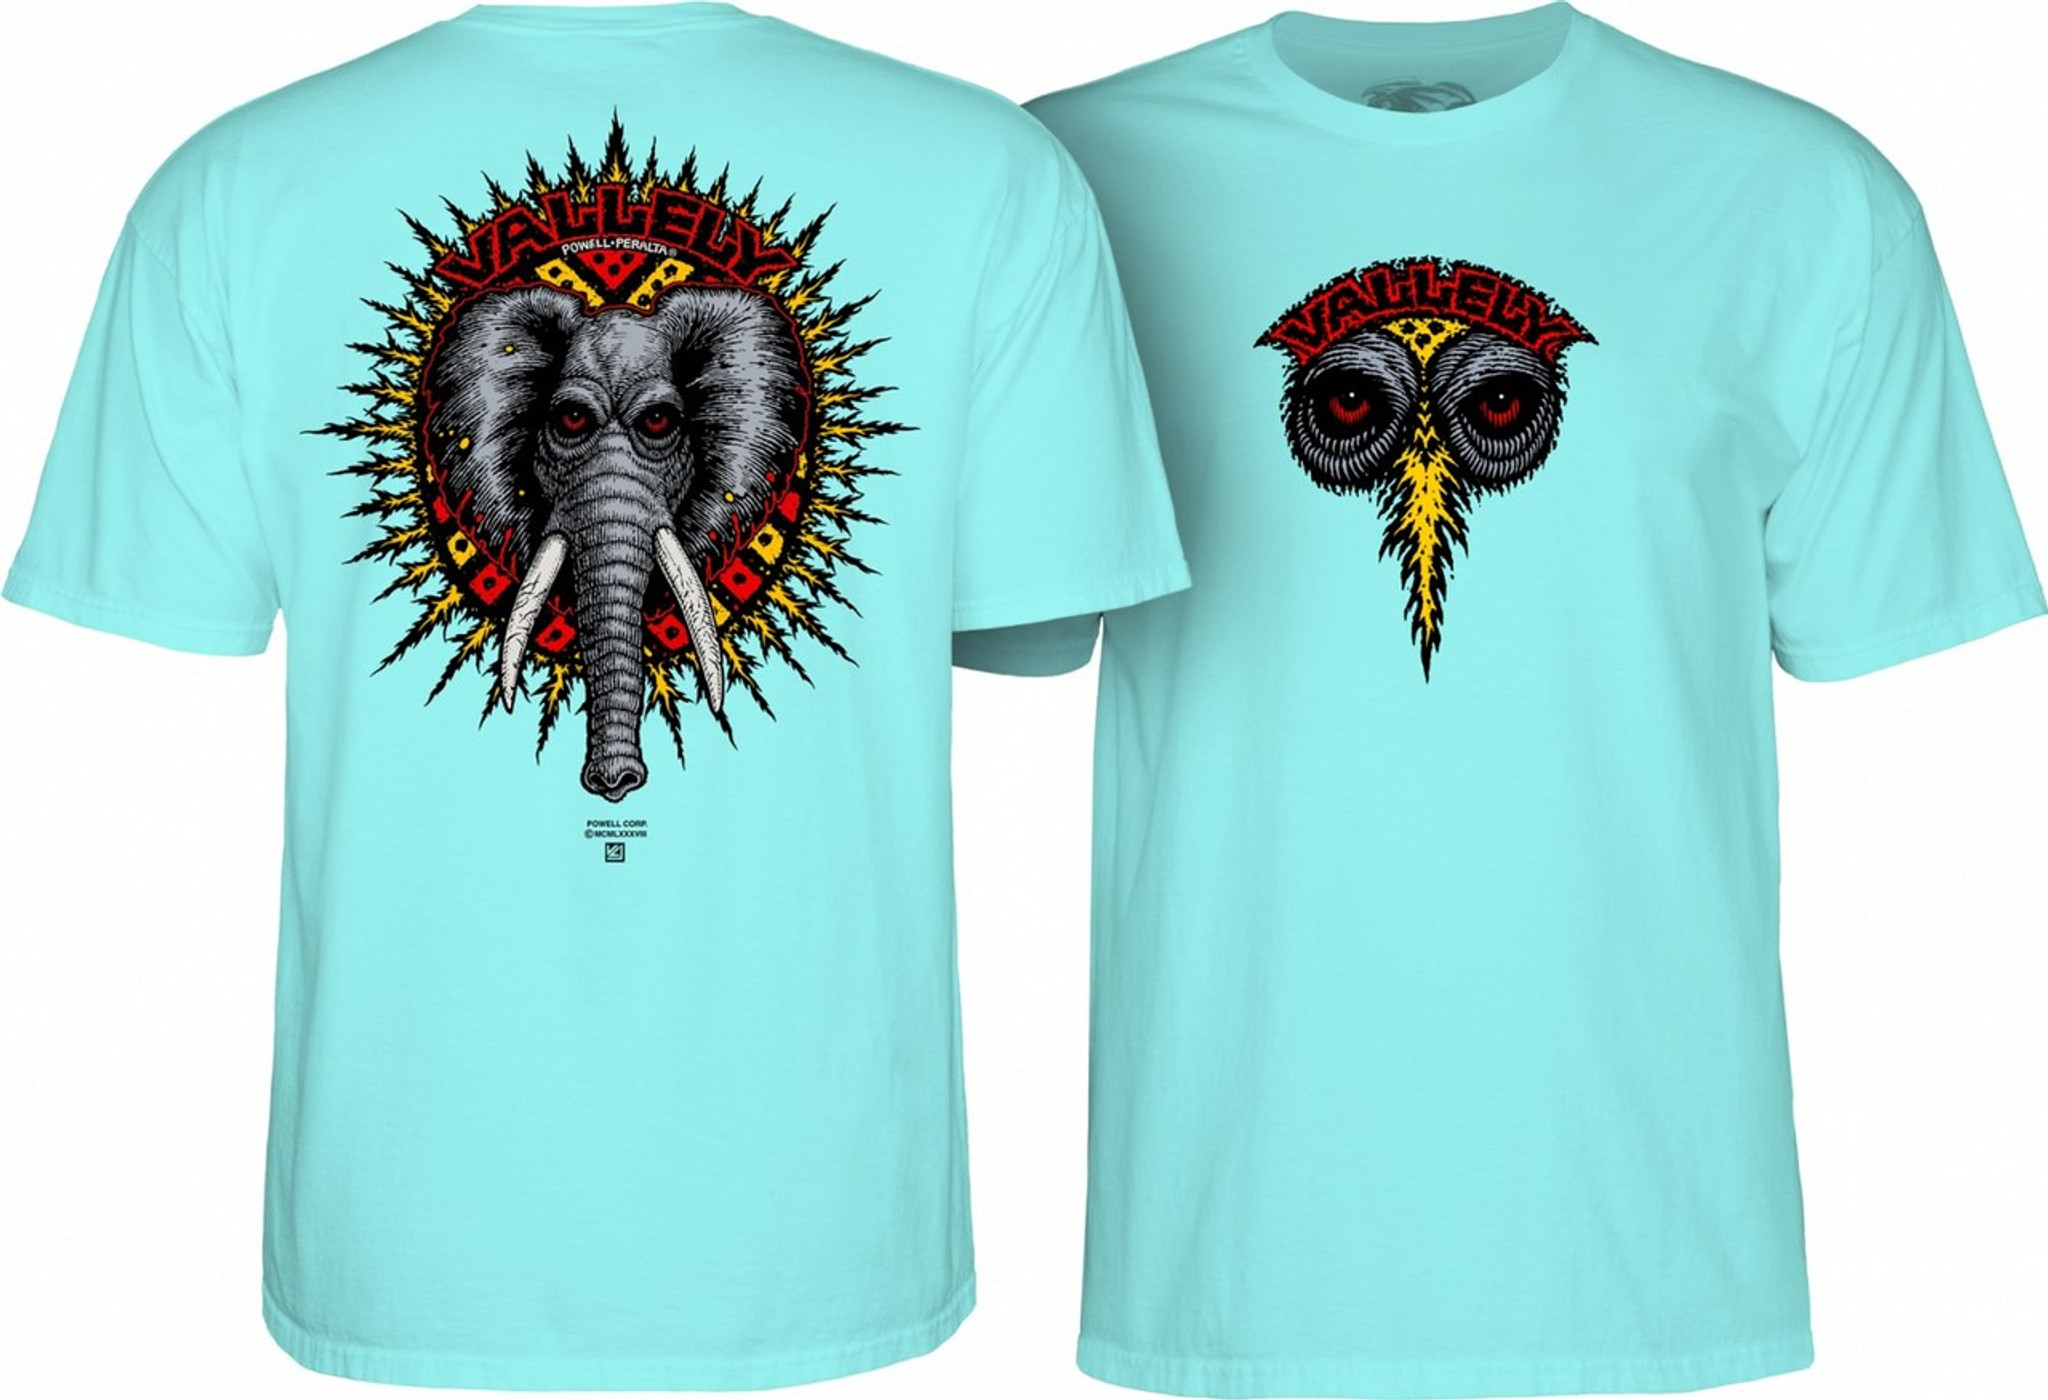 271878b7aefccf Powell Peralta Mike Vallely Elephant T-Shirt Old School